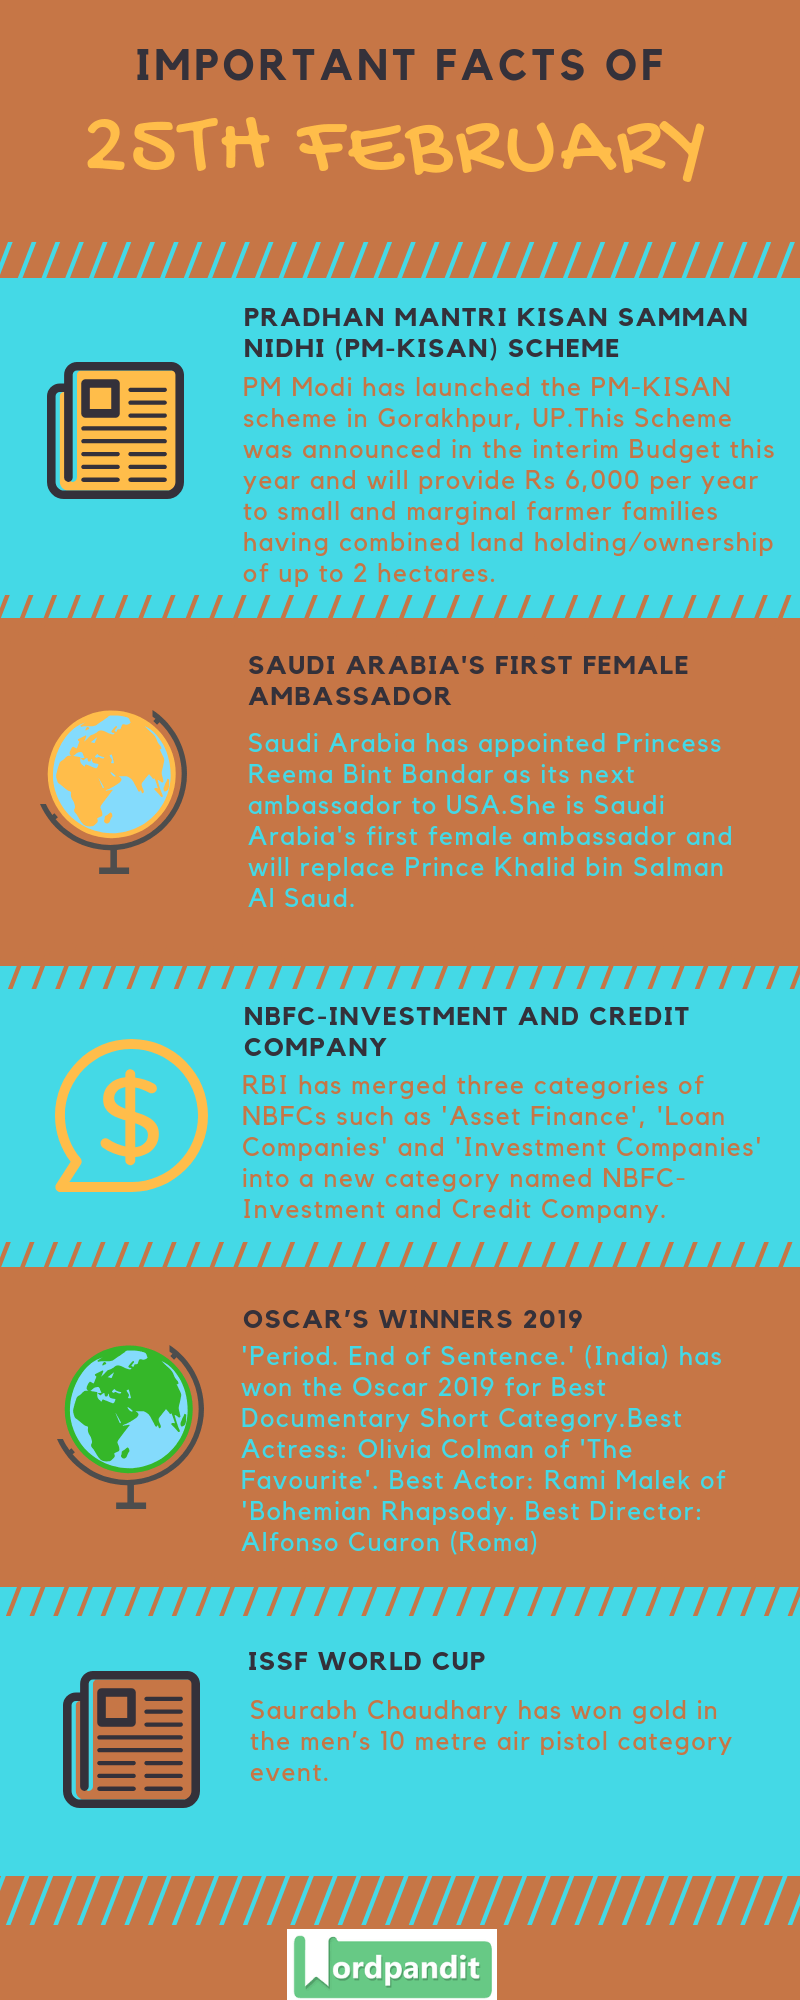 Daily Current Affairs 25 February 2019 Current Affairs Quiz 25 February 2019 Current Affairs Infographic